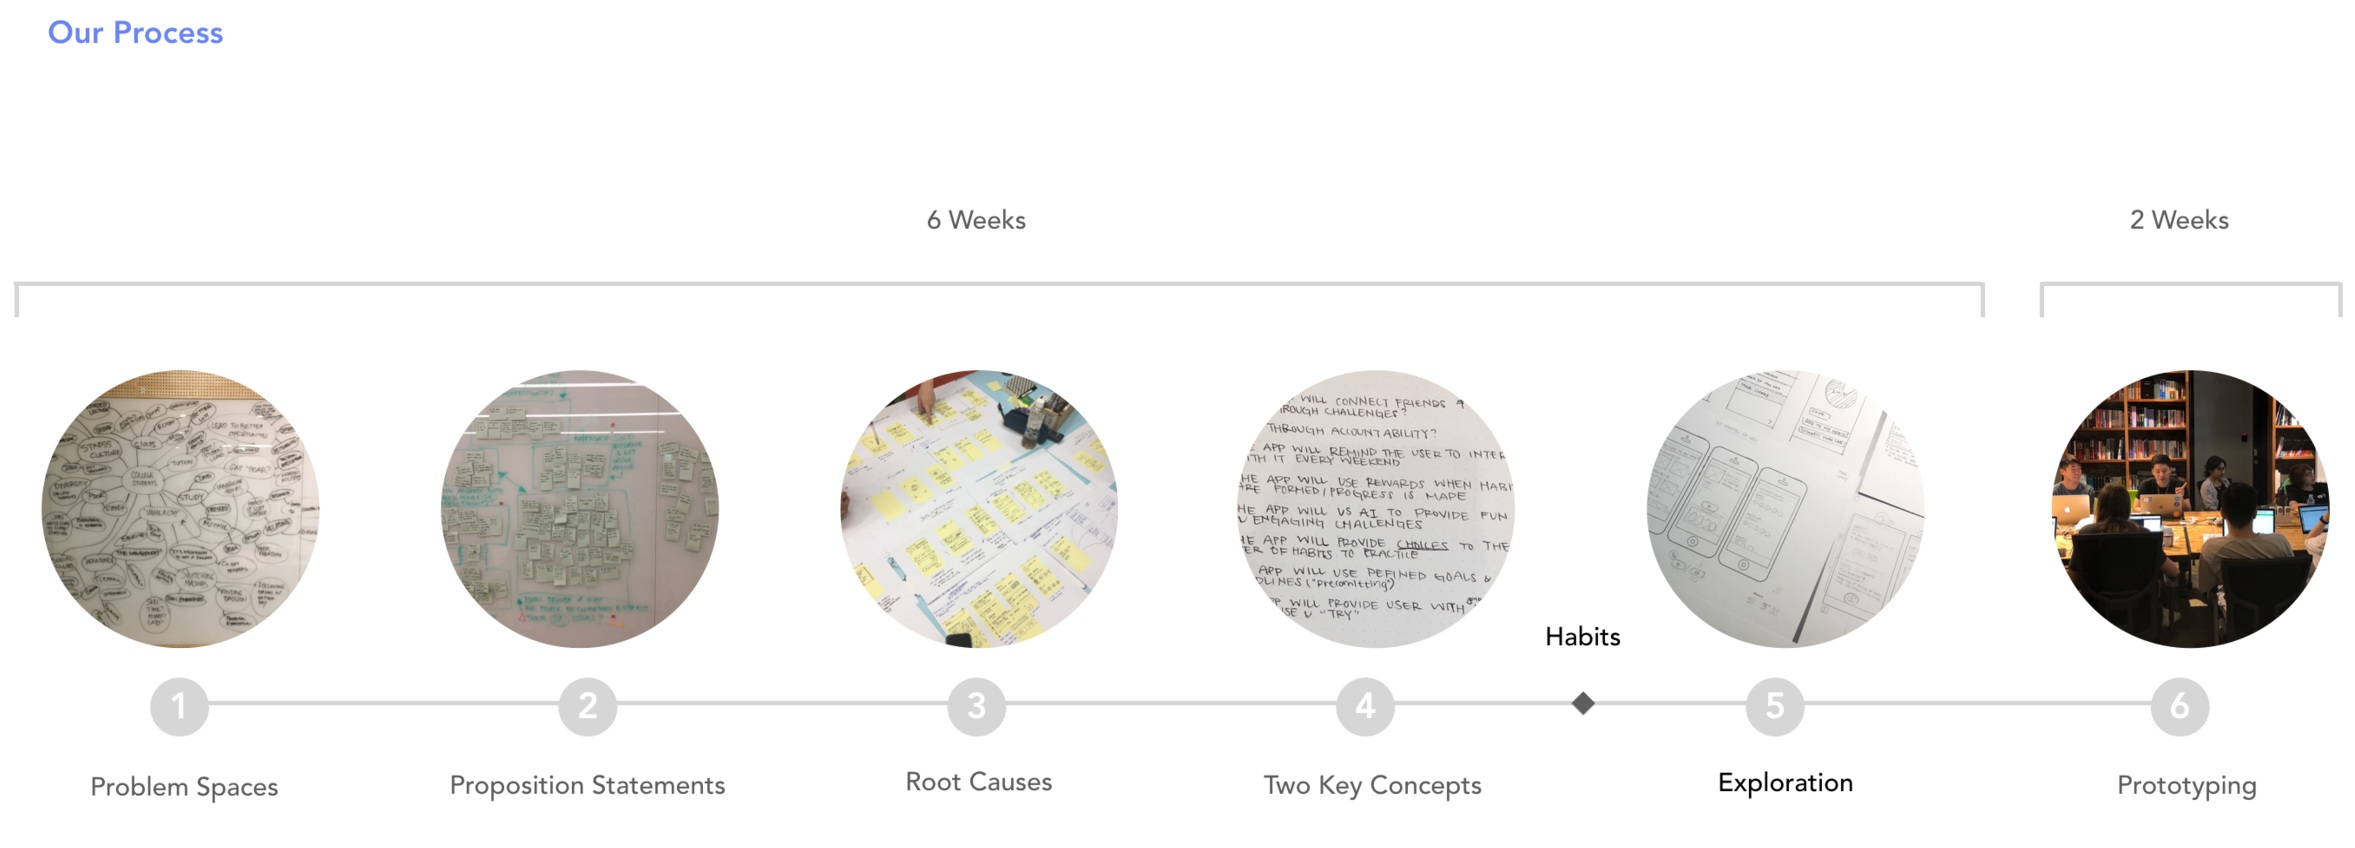 An overview of what our 8 week design process looked like